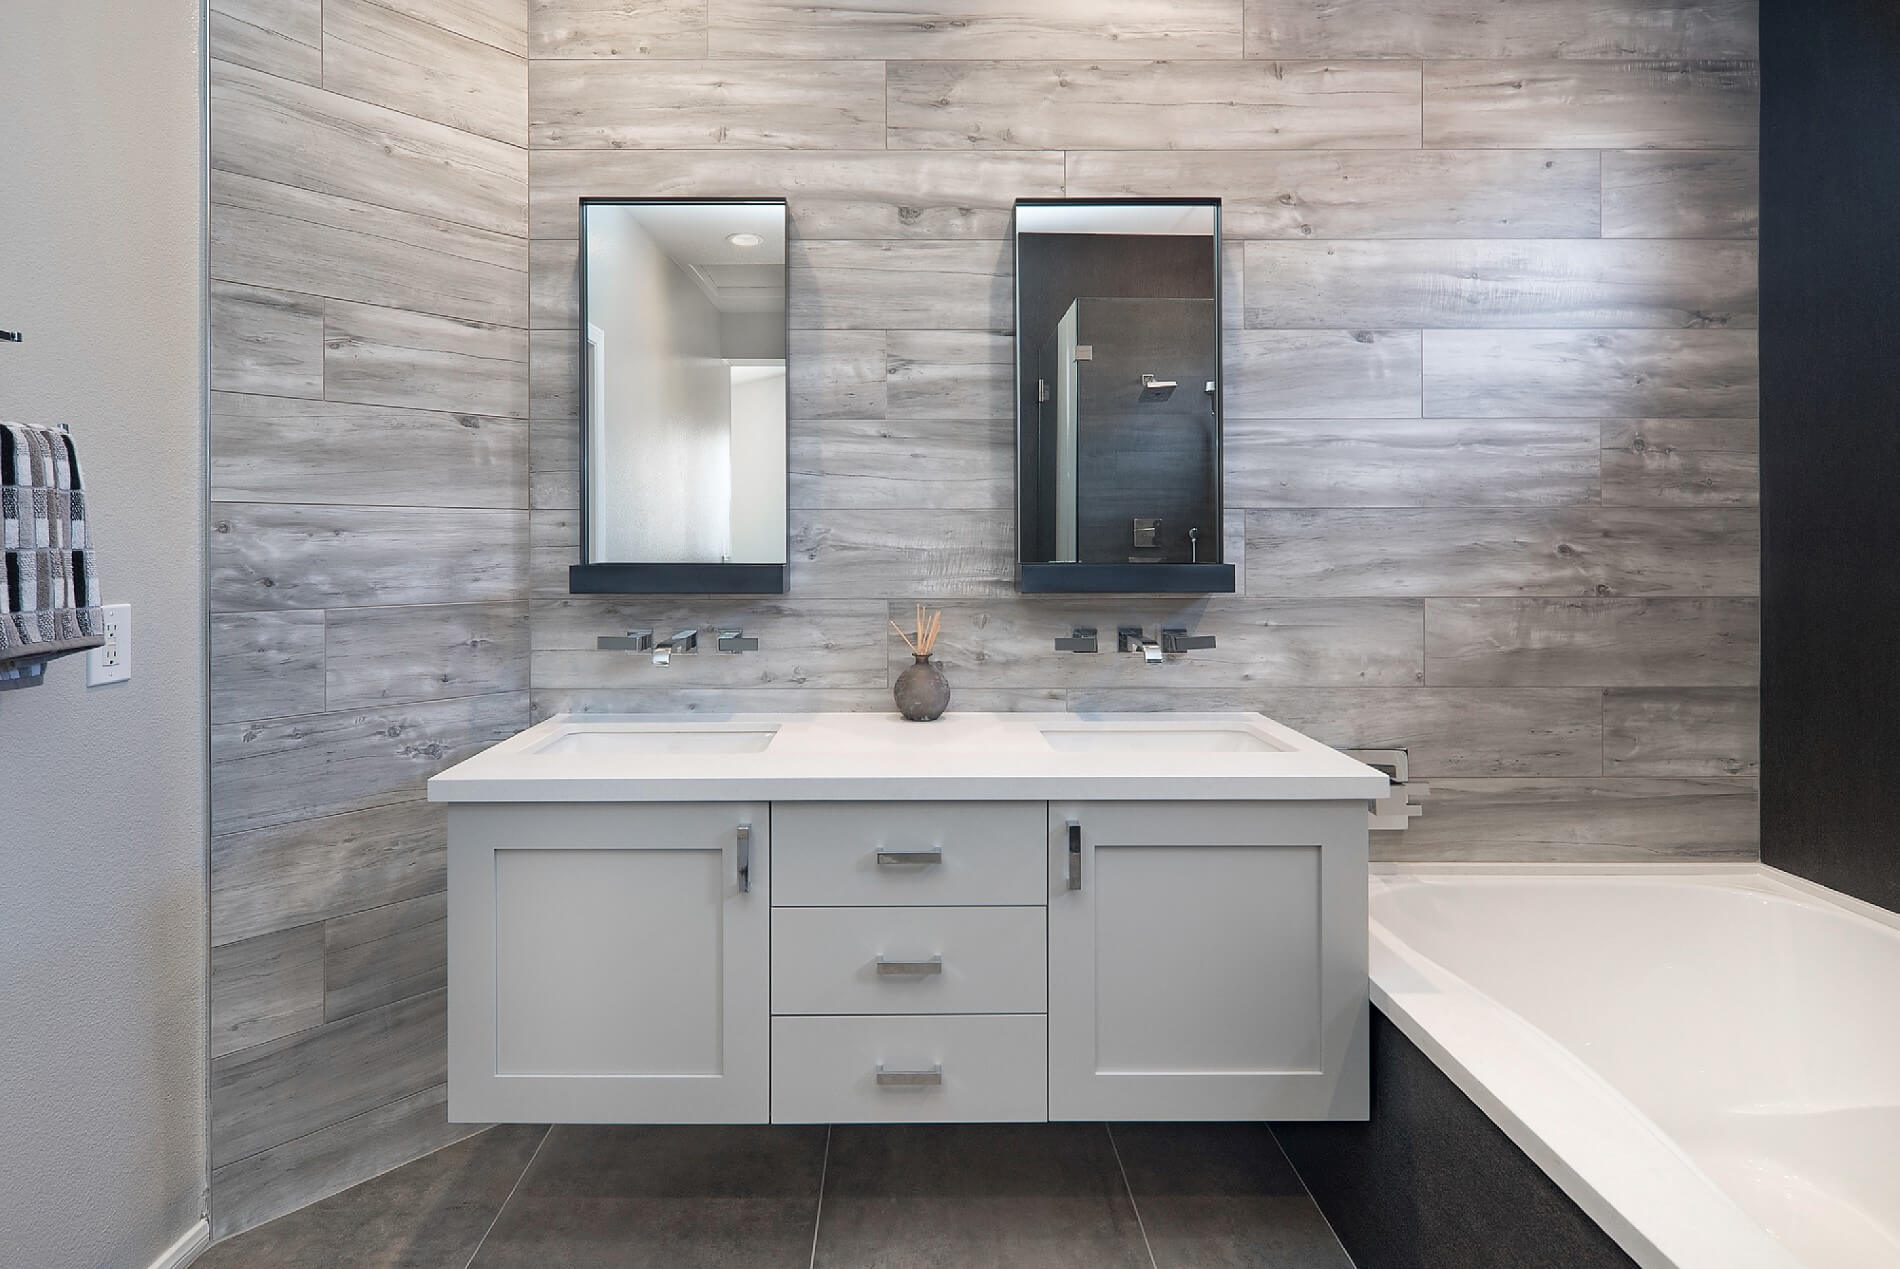 Master Bathroom Floating Vanity, Floating Vanity Design, Master Bathroom Makeover Huntington Beach